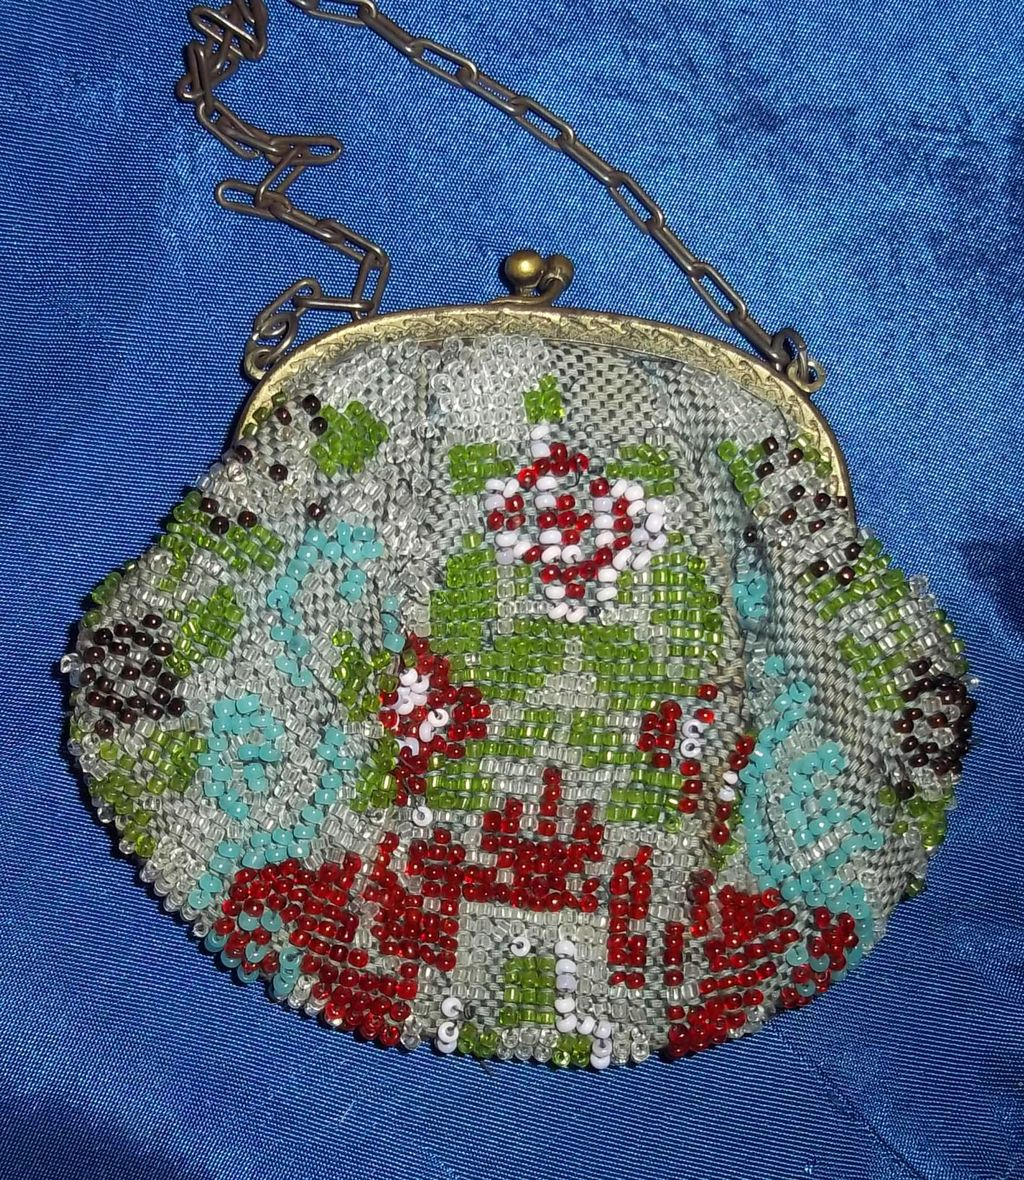 Beaded Bag from The 1900's suitable for a Doll